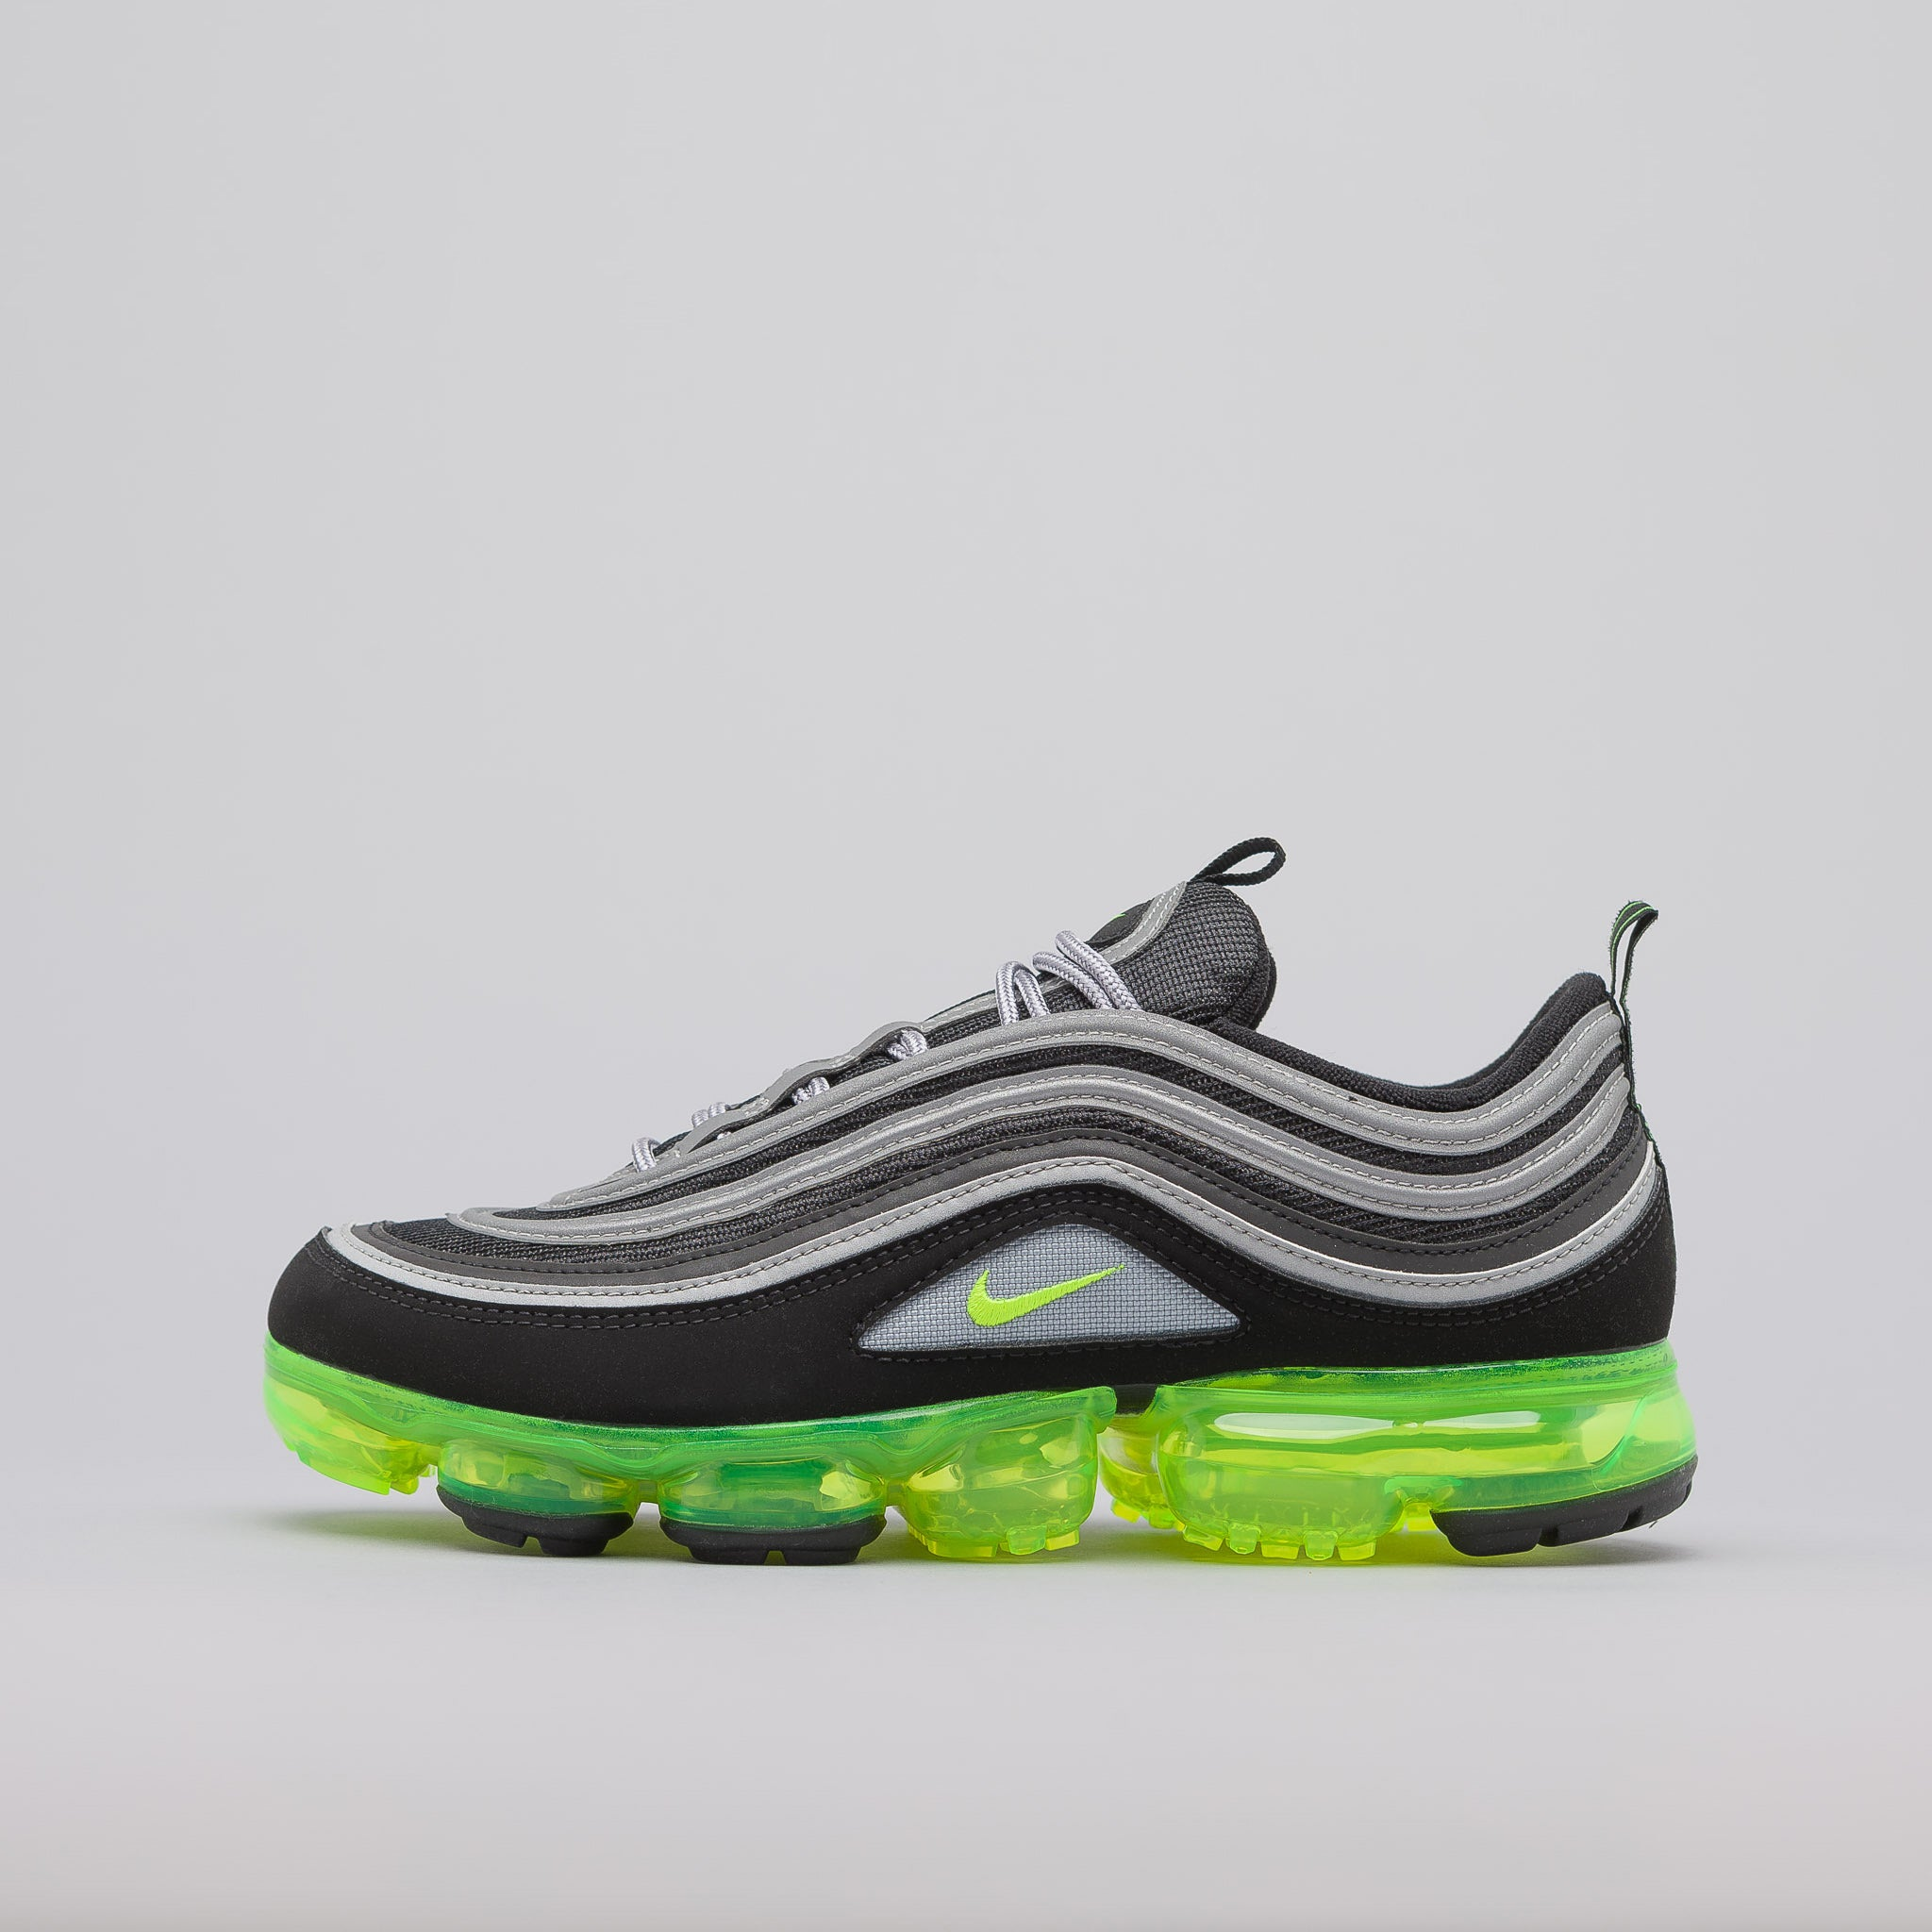 Air Vapormax 97 in Black/Volt Green. Nike